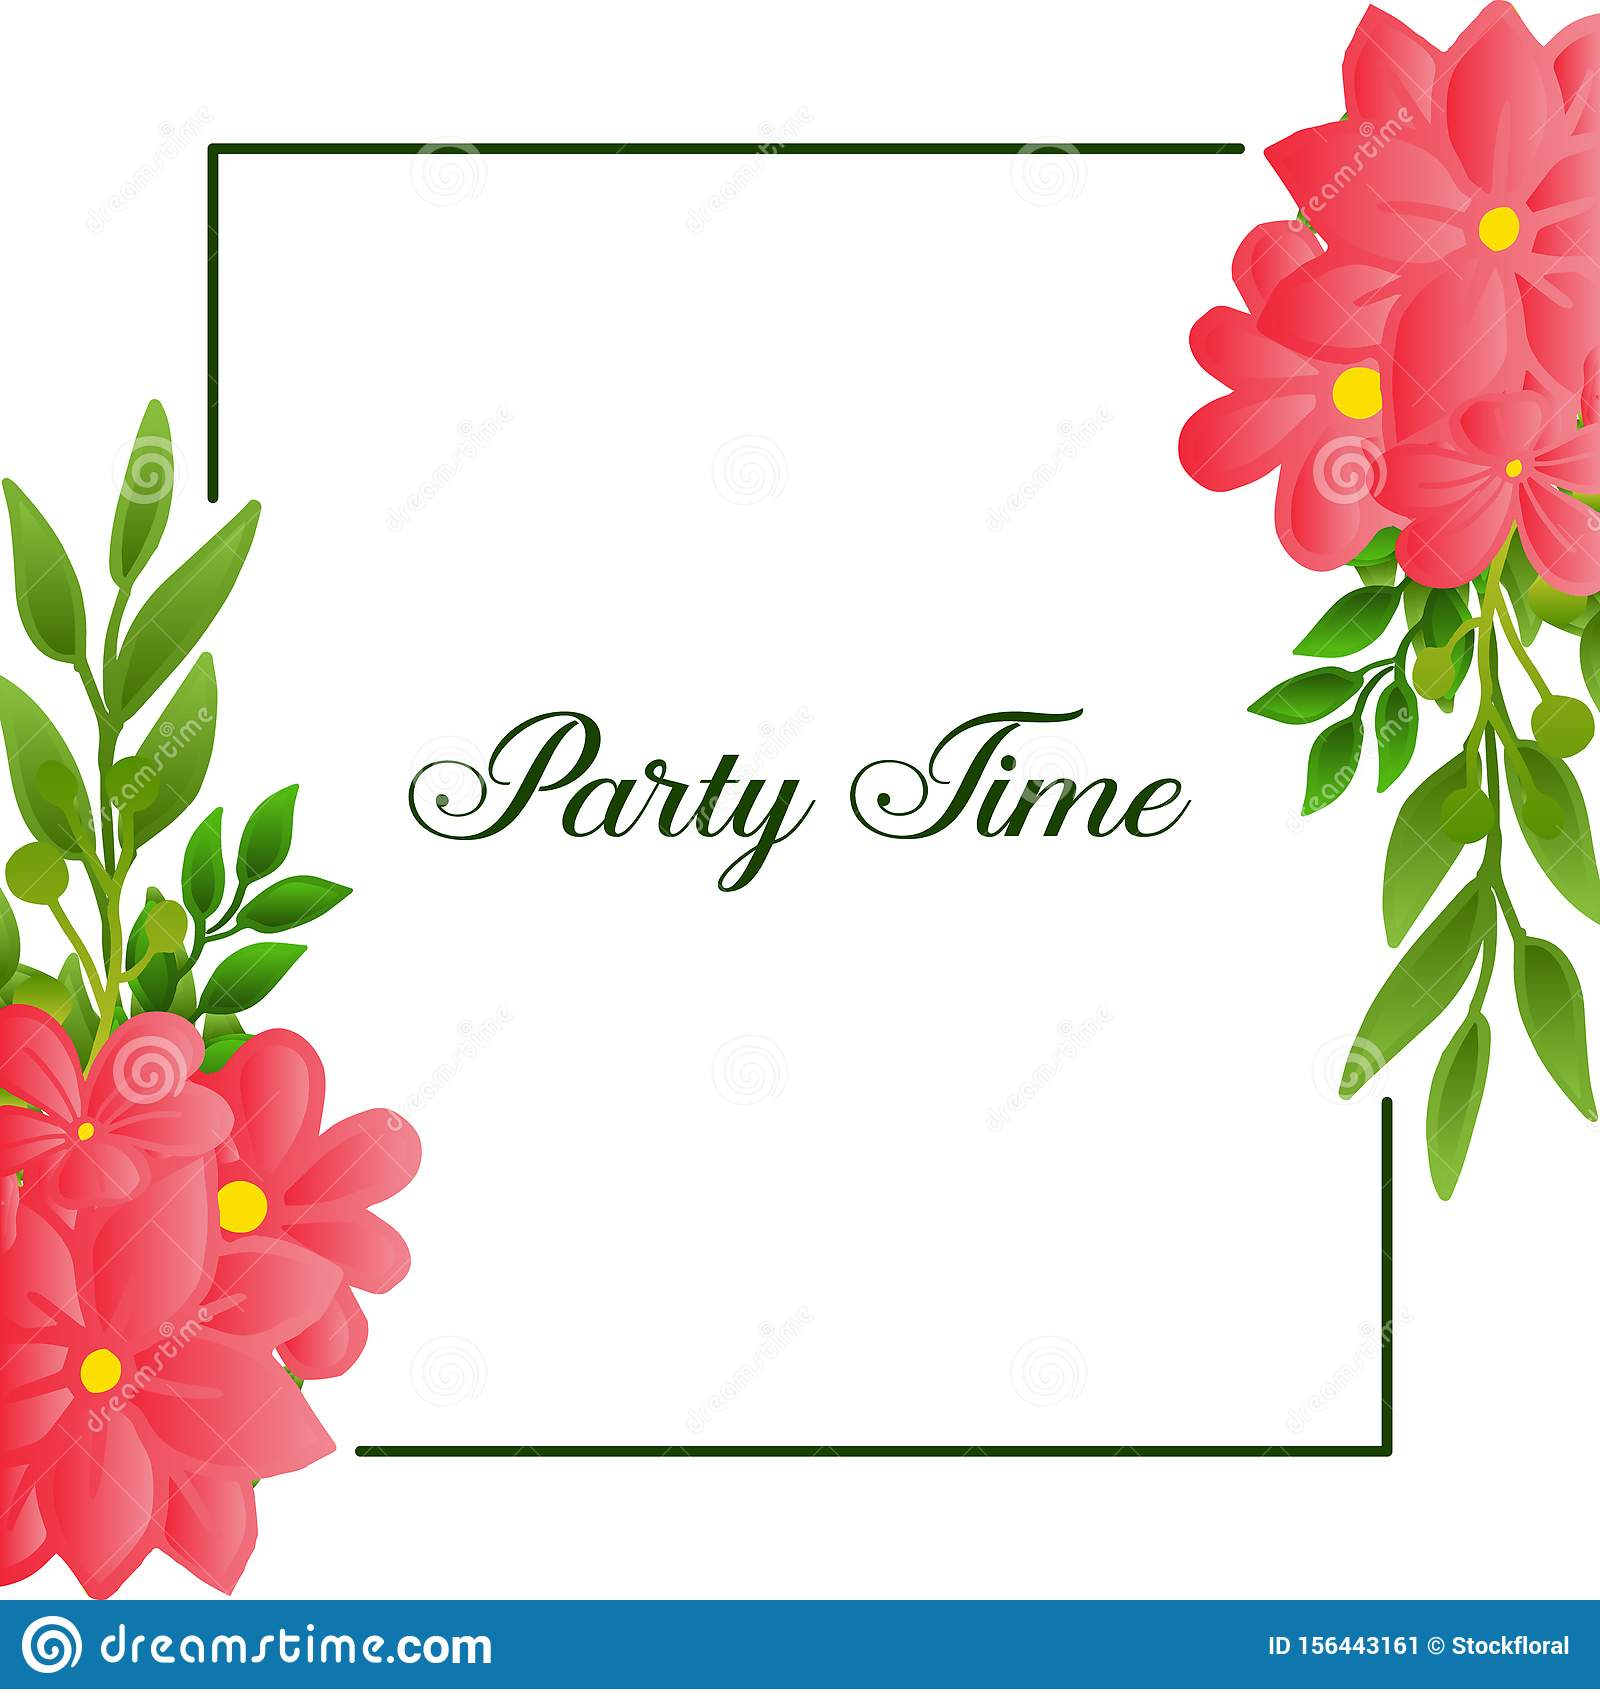 Party time poster design, with graphic beauty of wreath frame. Vector